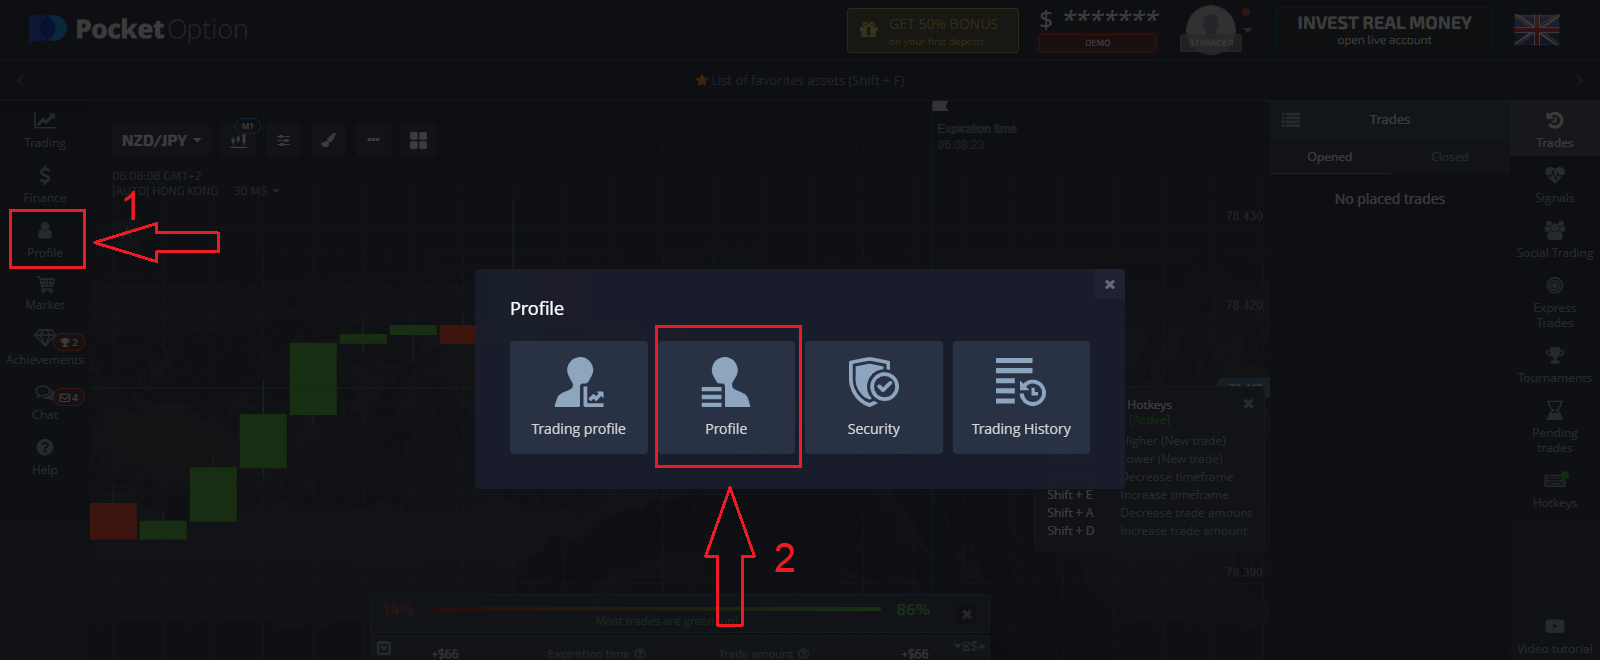 How to Verify Account in Pocket Option